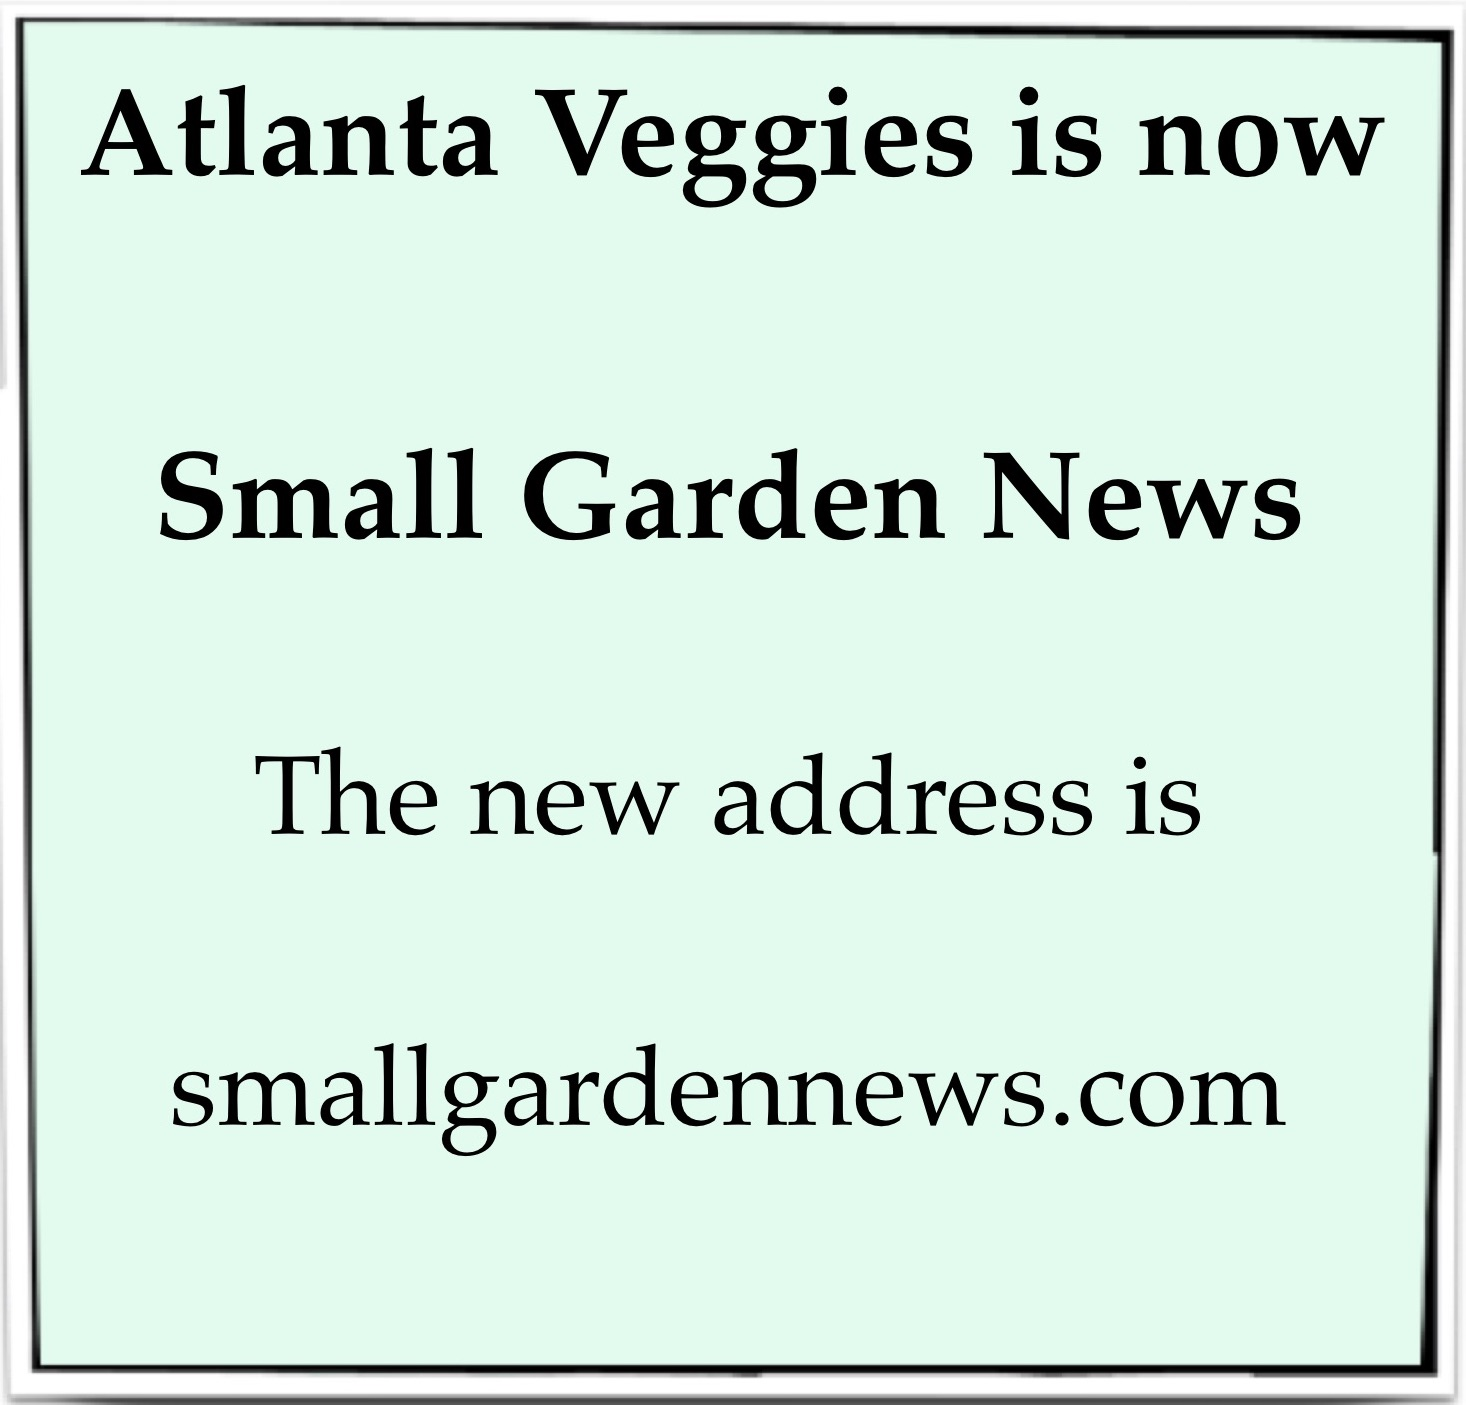 Moving to Small Garden News!